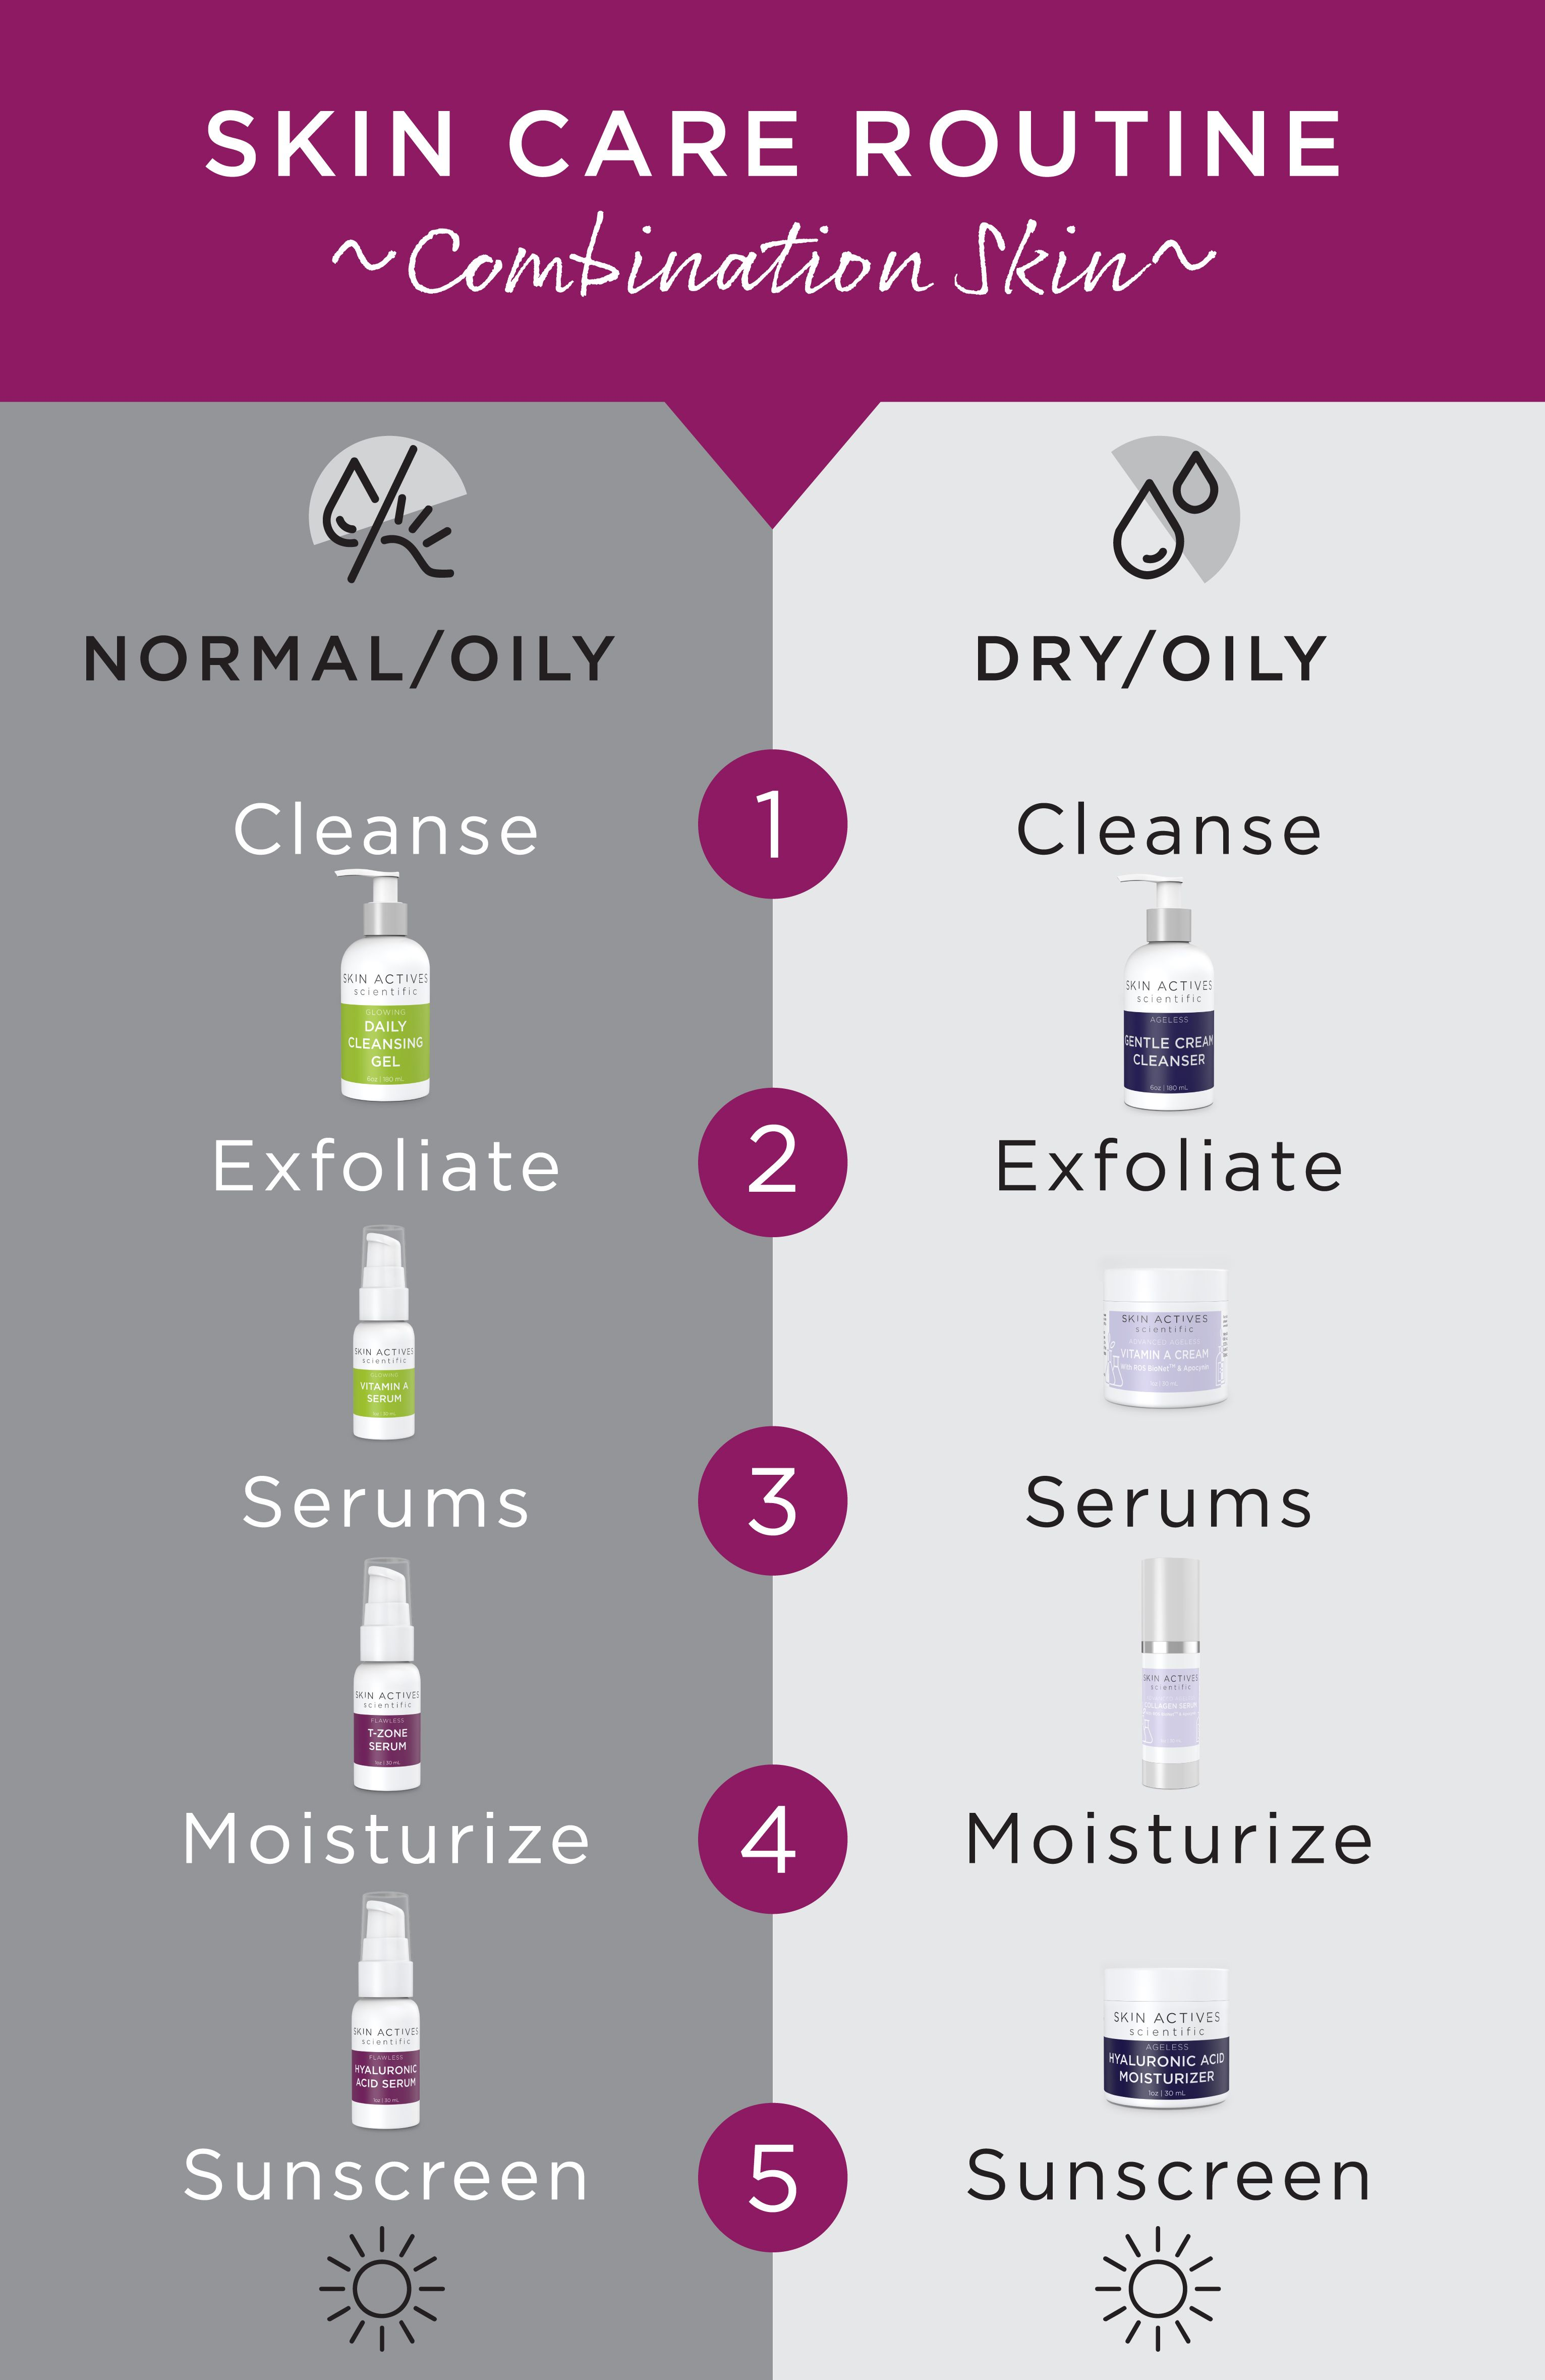 How Do You Take Care Of Combination Skin Skin Actives Dry Skin Care Routine Skin Care Routine Skin Active